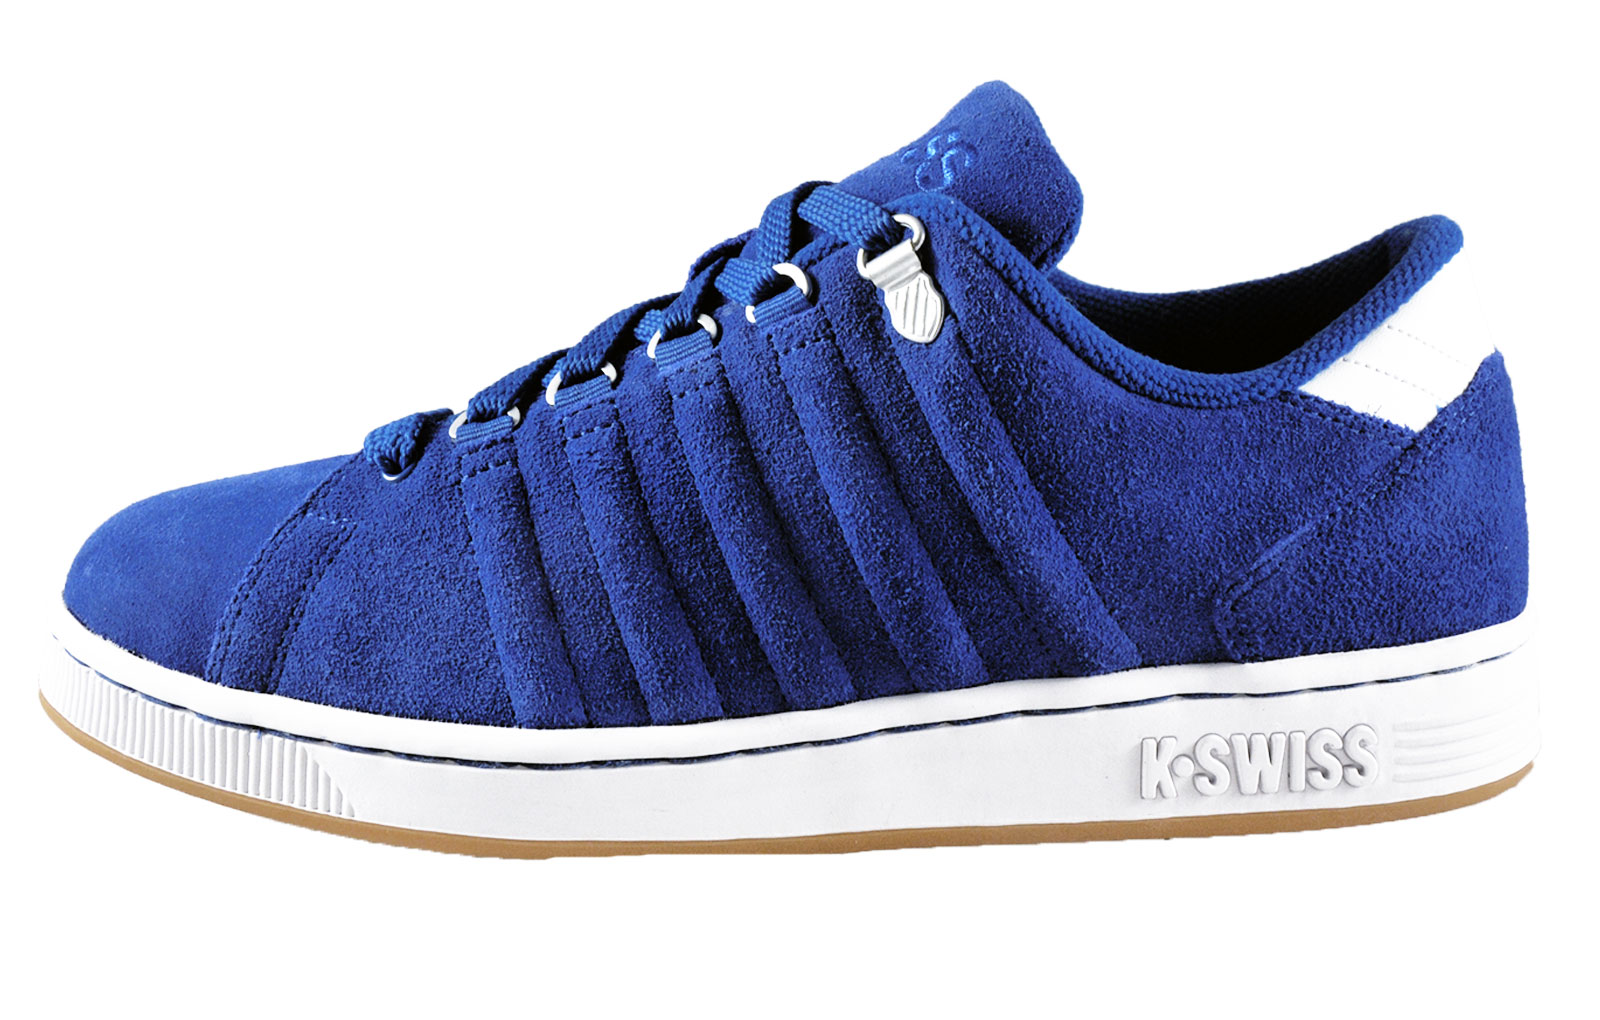 k swiss mens lozan iii premium suede leather trainers. Black Bedroom Furniture Sets. Home Design Ideas